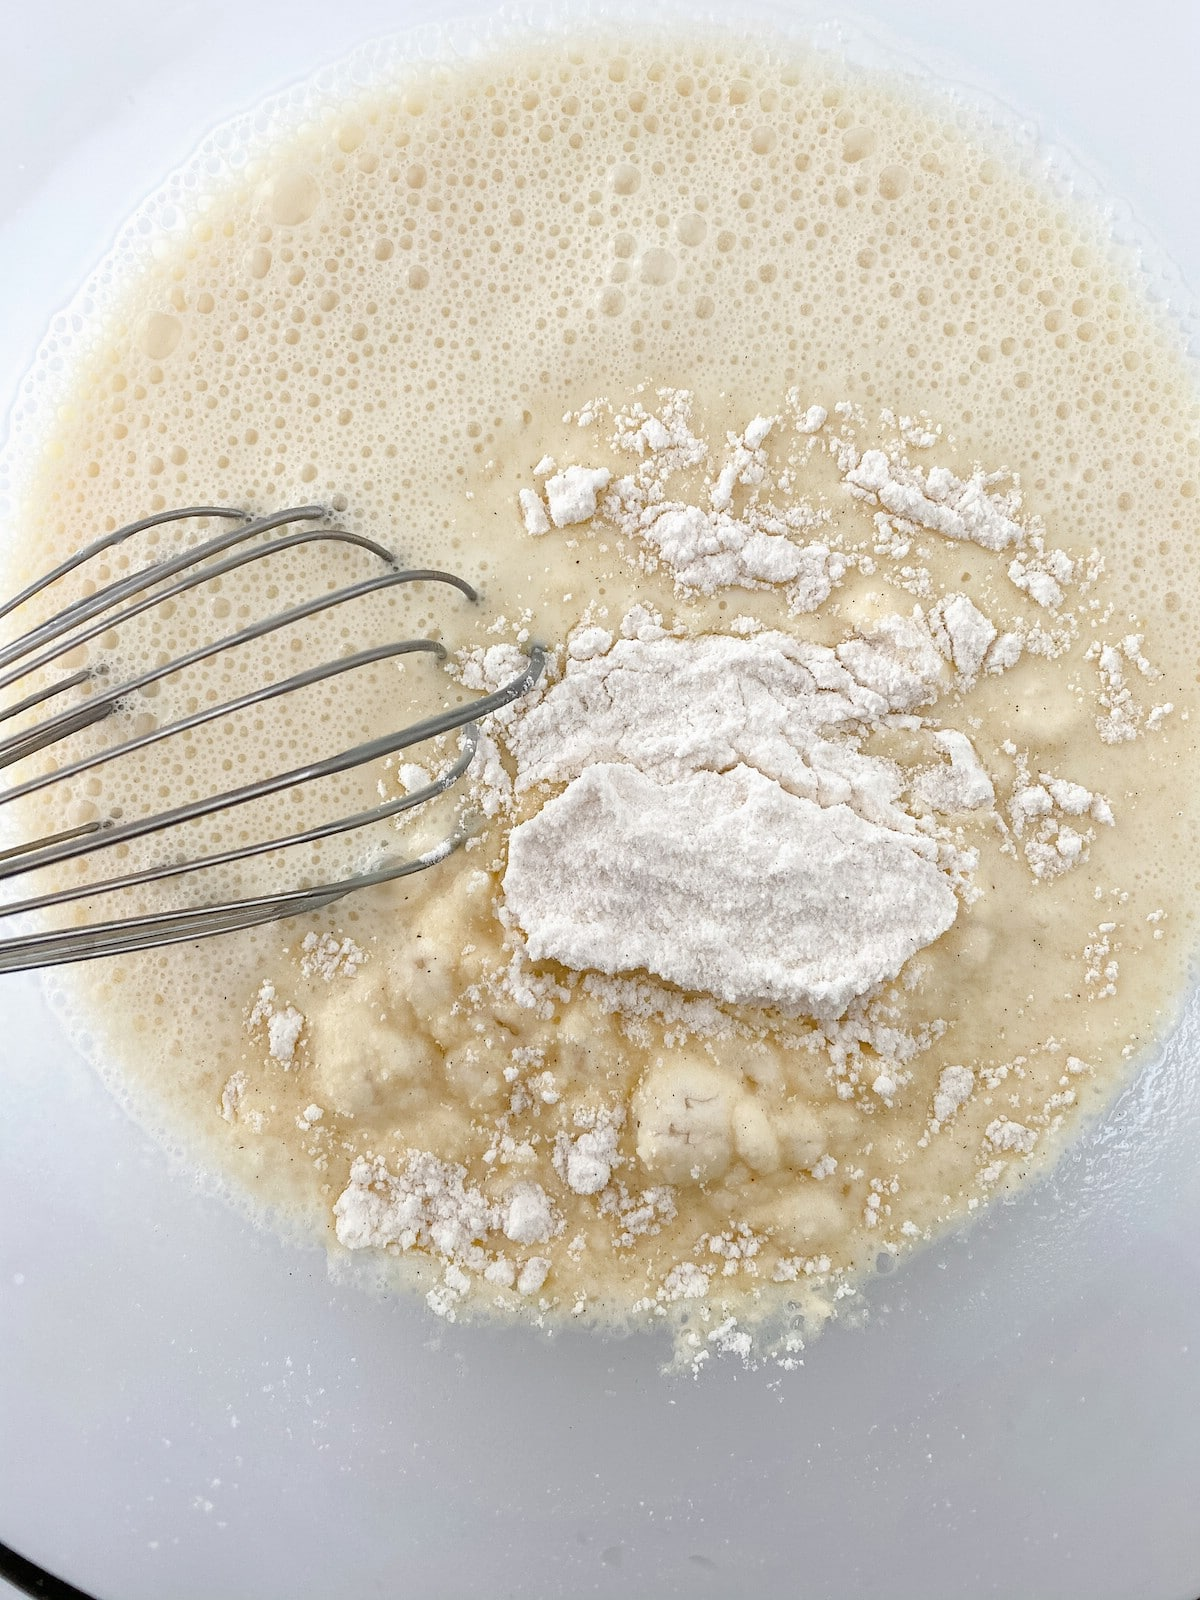 Whisking pudding mix into milk mixture in glass bowl